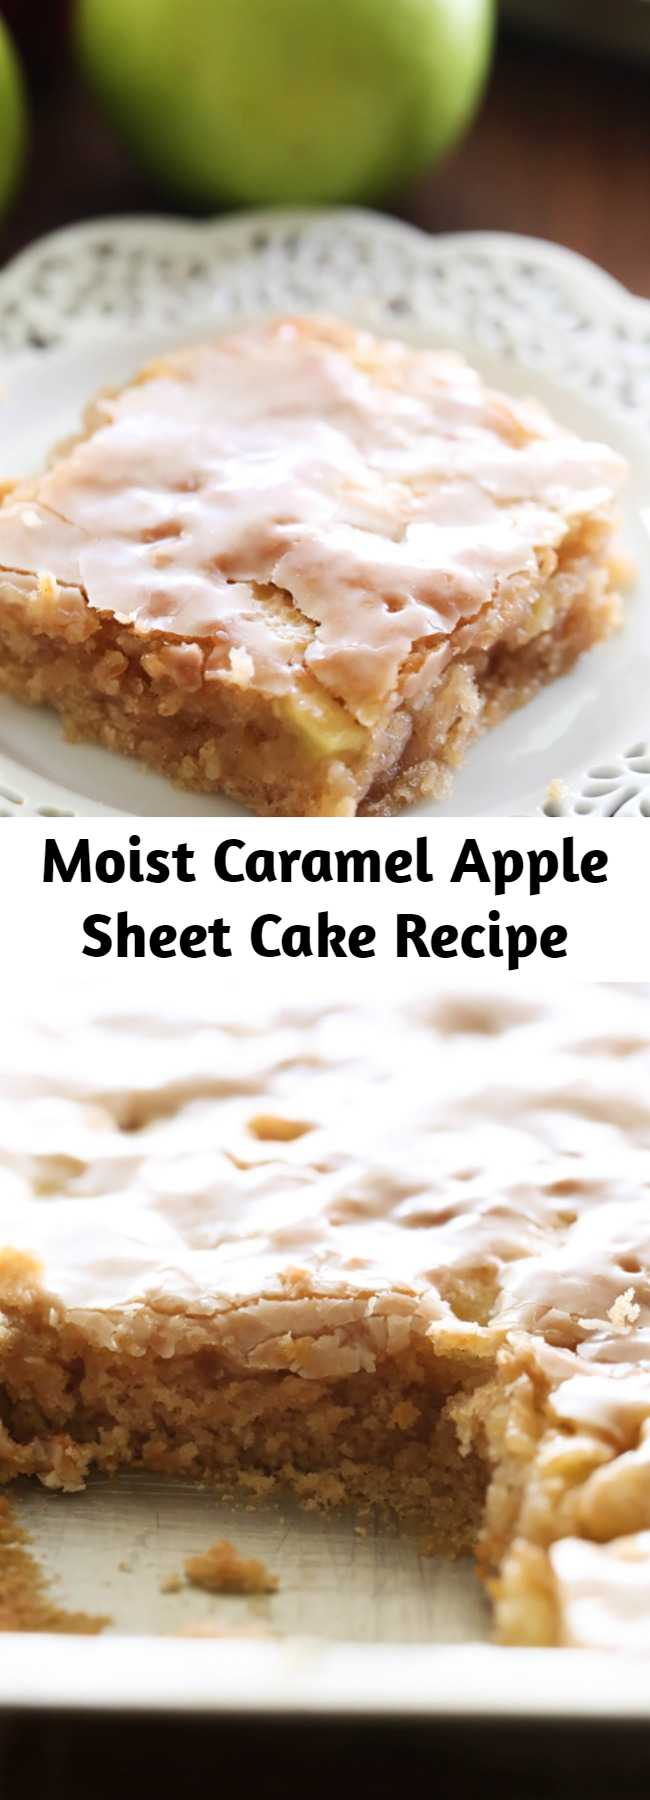 Moist Caramel Apple Sheet Cake Recipe - This delicious apple cake is perfectly moist and has caramel frosting infused in each and every bite! It is heavenly!